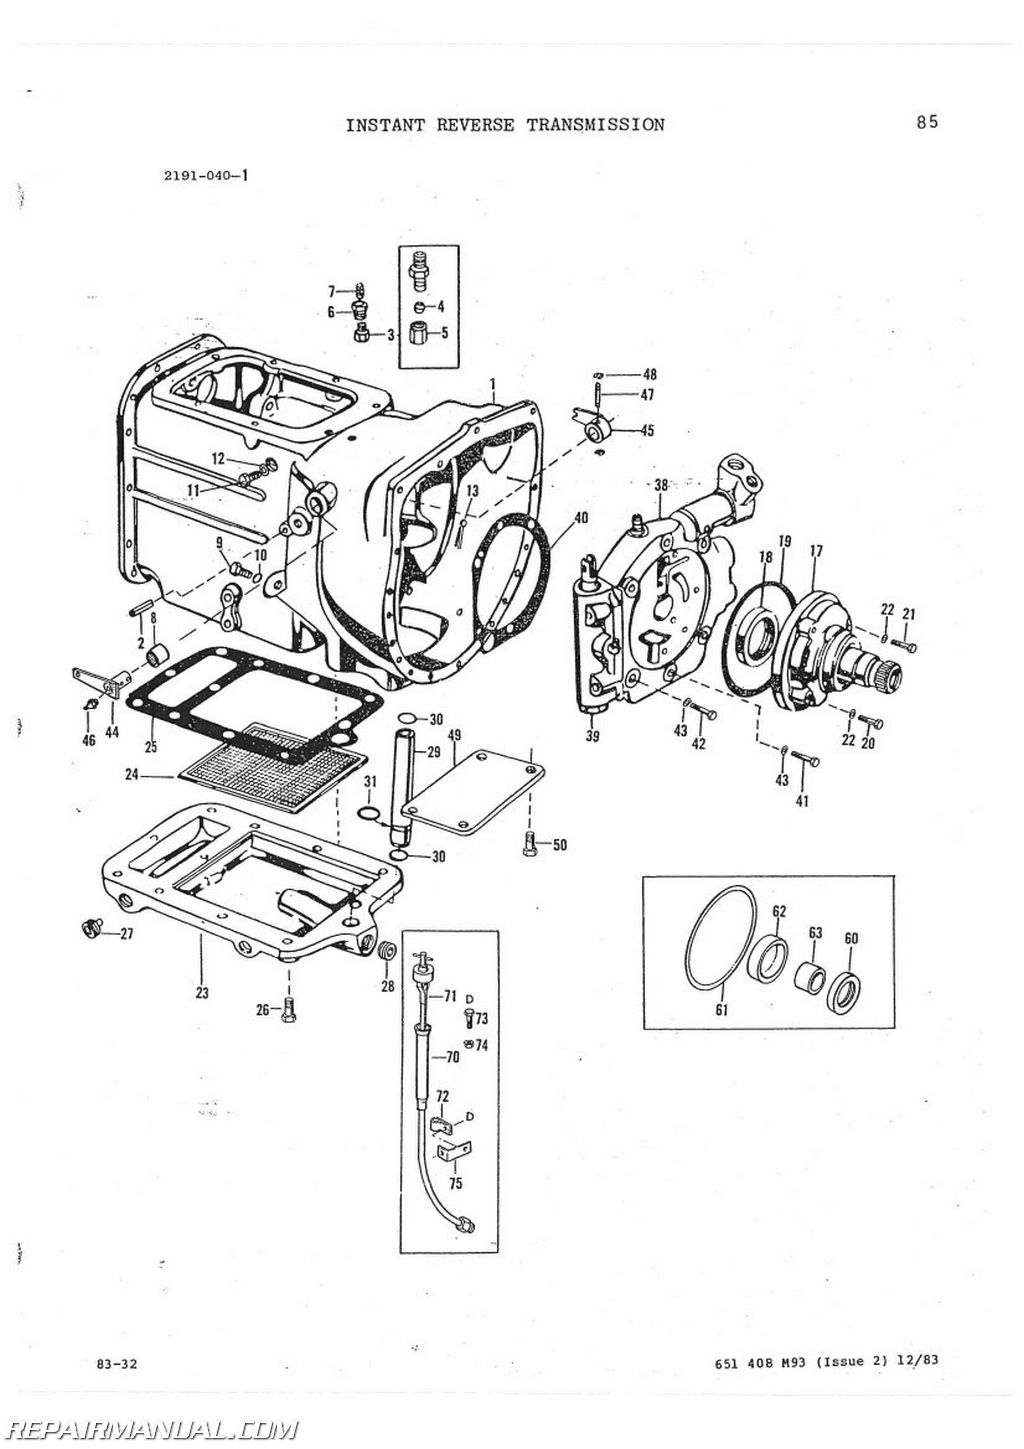 Mf 35 Wiring Diagram furthermore Ezgo Golf Cart Parts Diagram Differential 20 Parts 20 Columbia 20 Par 20 Car 20 Golf 20 Carrts 20 Electric 20 Enchanting Representation More Like Ez Sketch Wiring as well 53q5v John Deere Gator 4x4 Hpx Kwasiaki Gas Engine Will Not Start together with Starters additionally Alternator wiring. on john deere voltage regulator wiring …